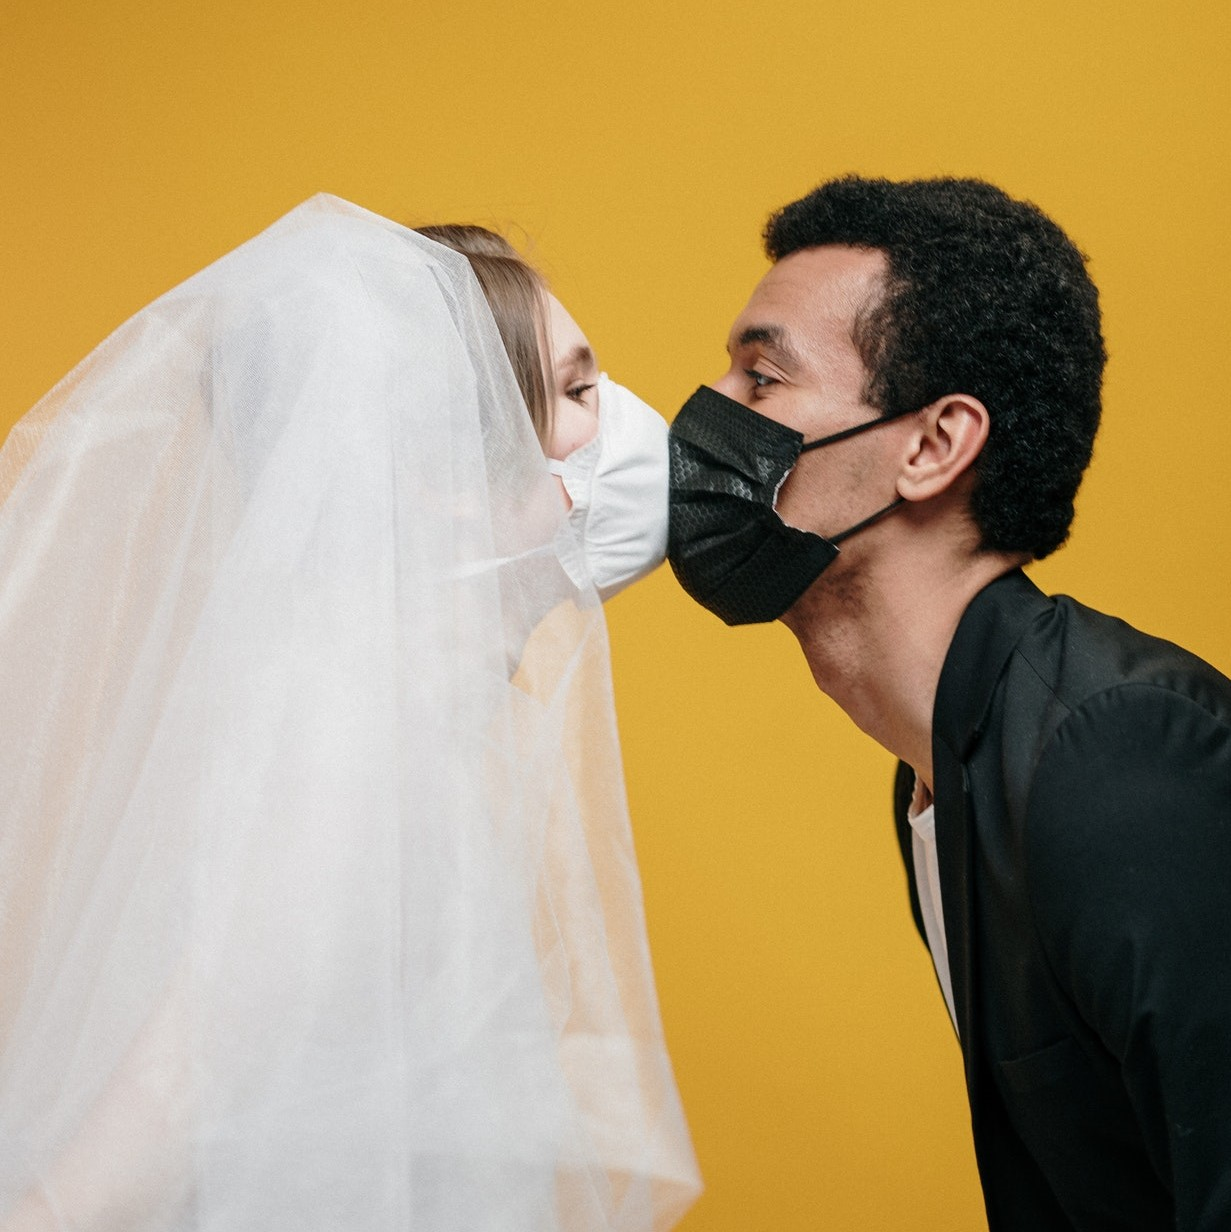 Braide and groom kissing with masks on